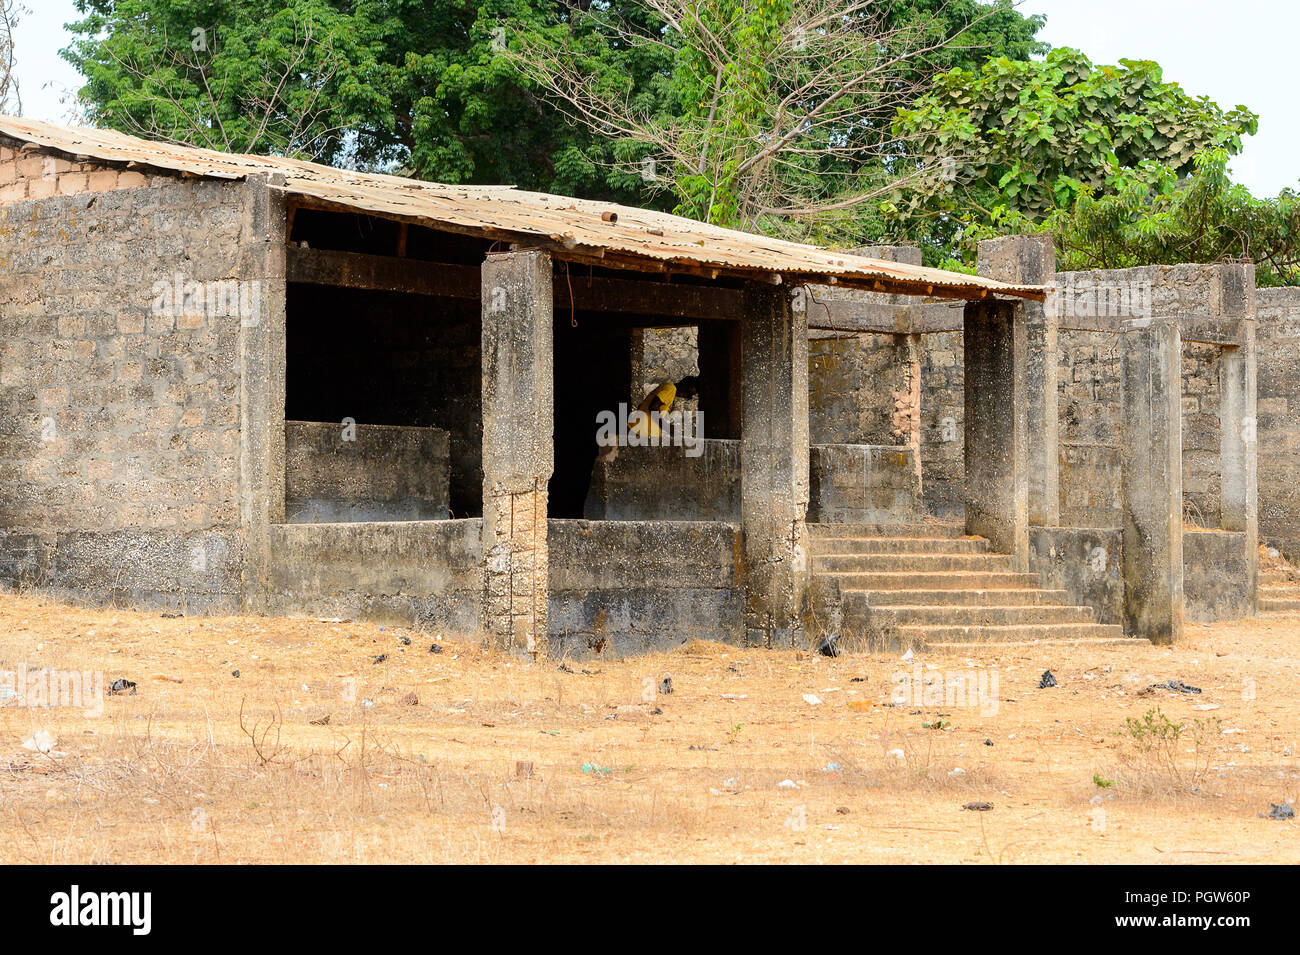 BUBAQUE, GUINEA BISSAU - MAY 5, 2017: Unidentified local man in yellow shirt stands in the unbuilt building in a village of the Bubaque island. People Stock Photo